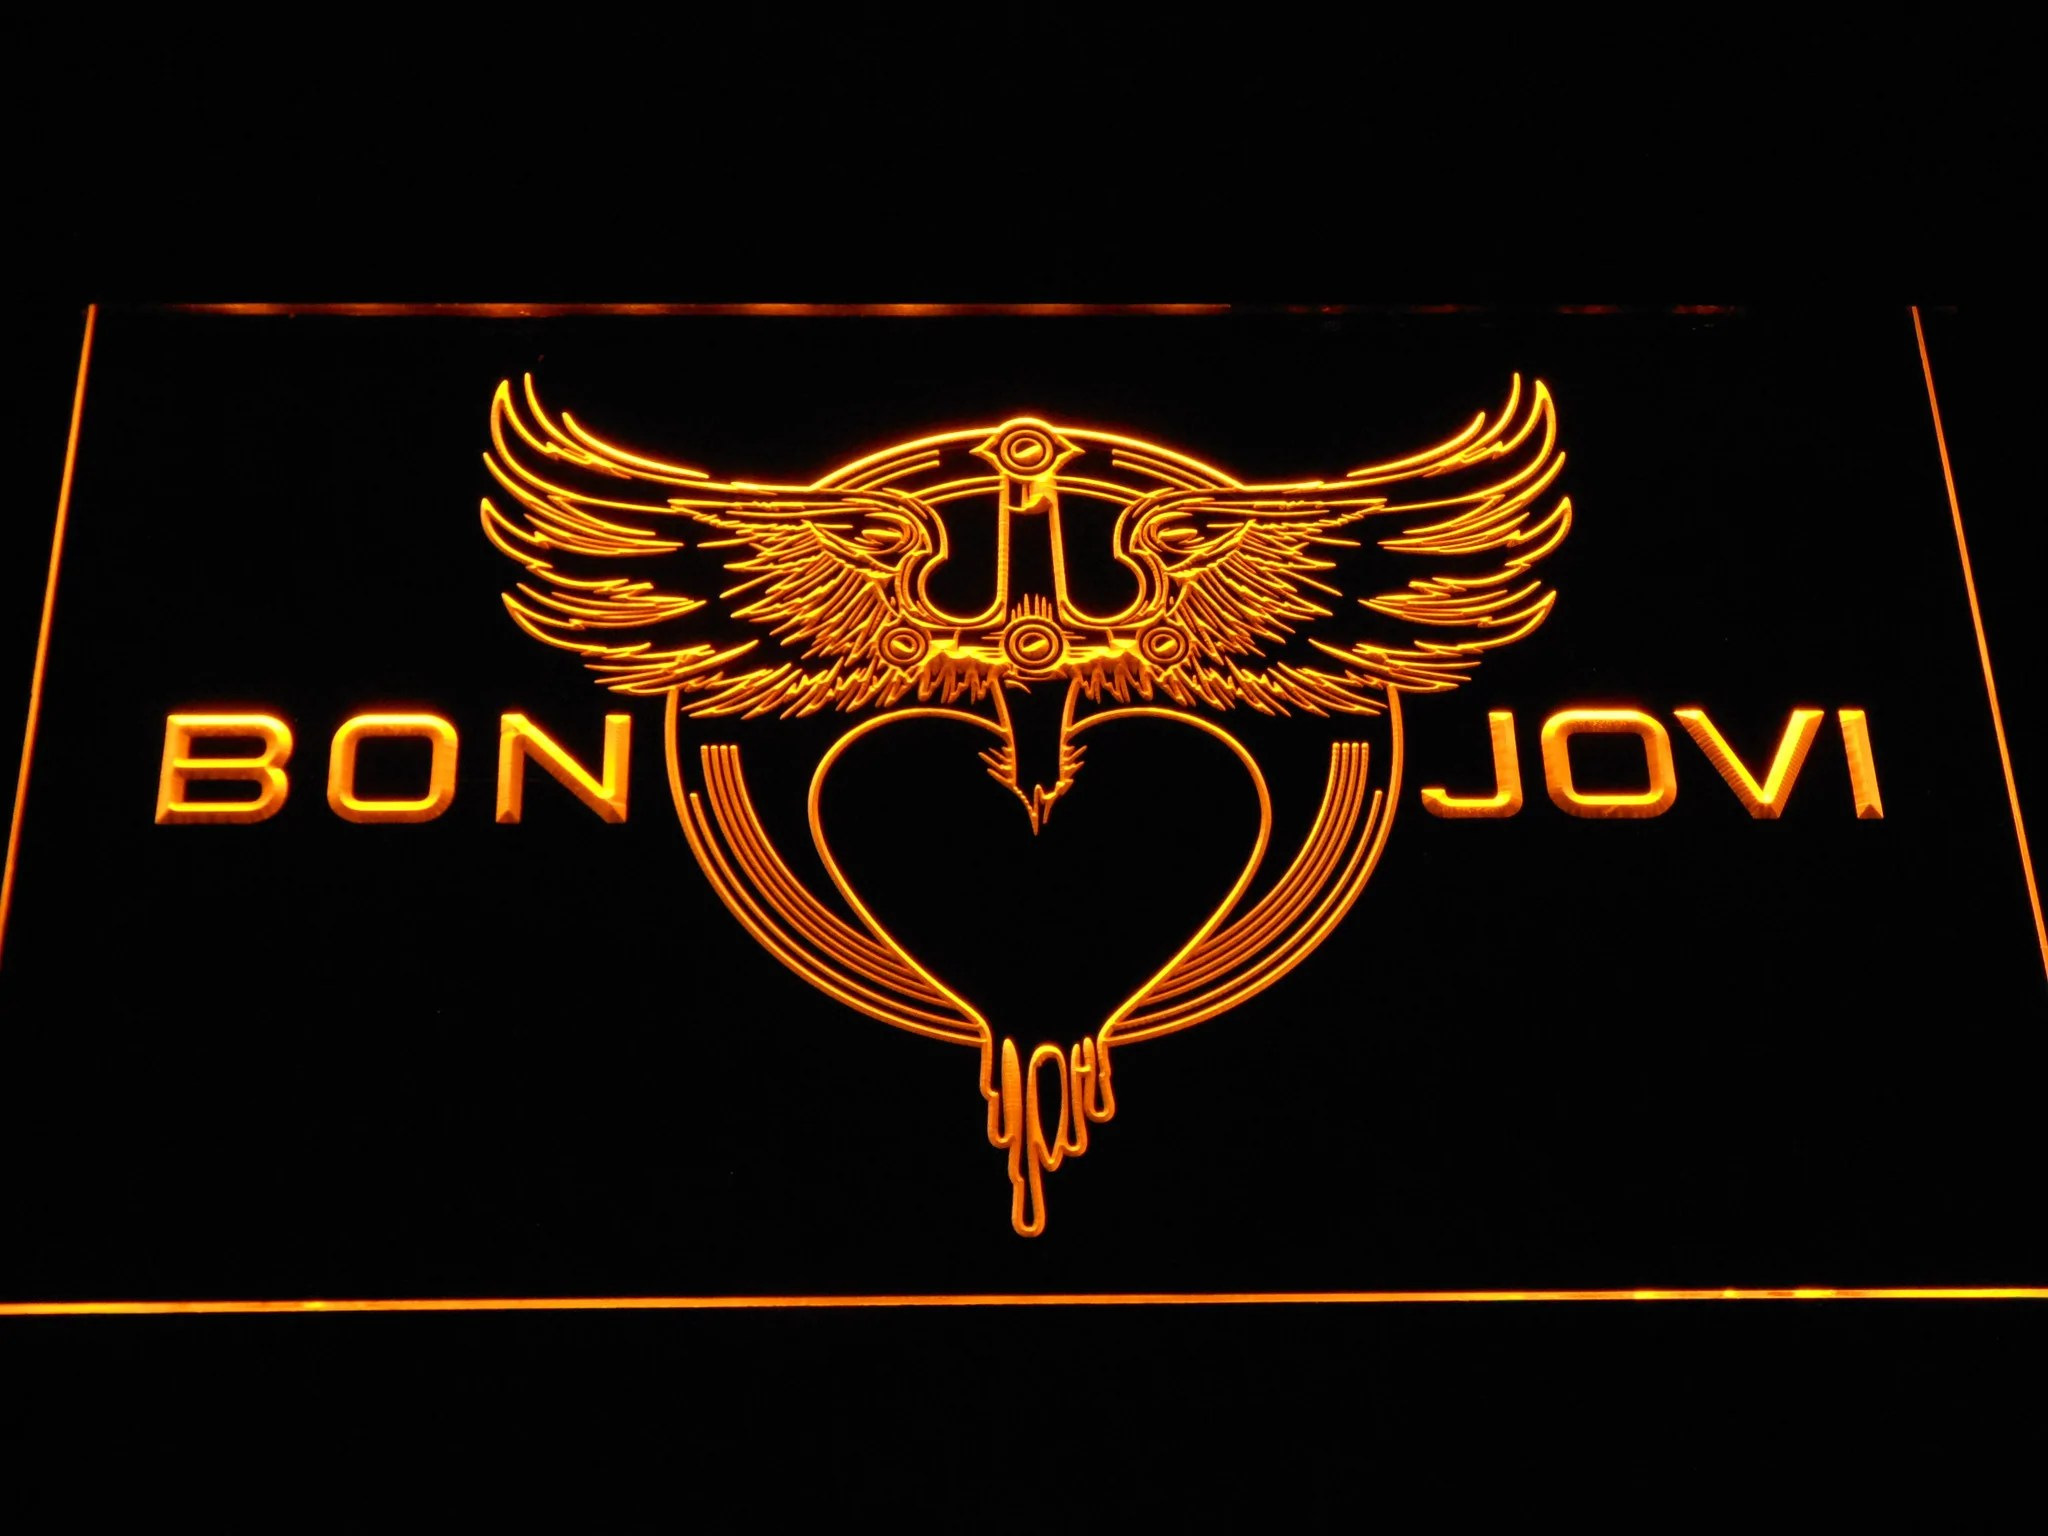 bon jovi heart and